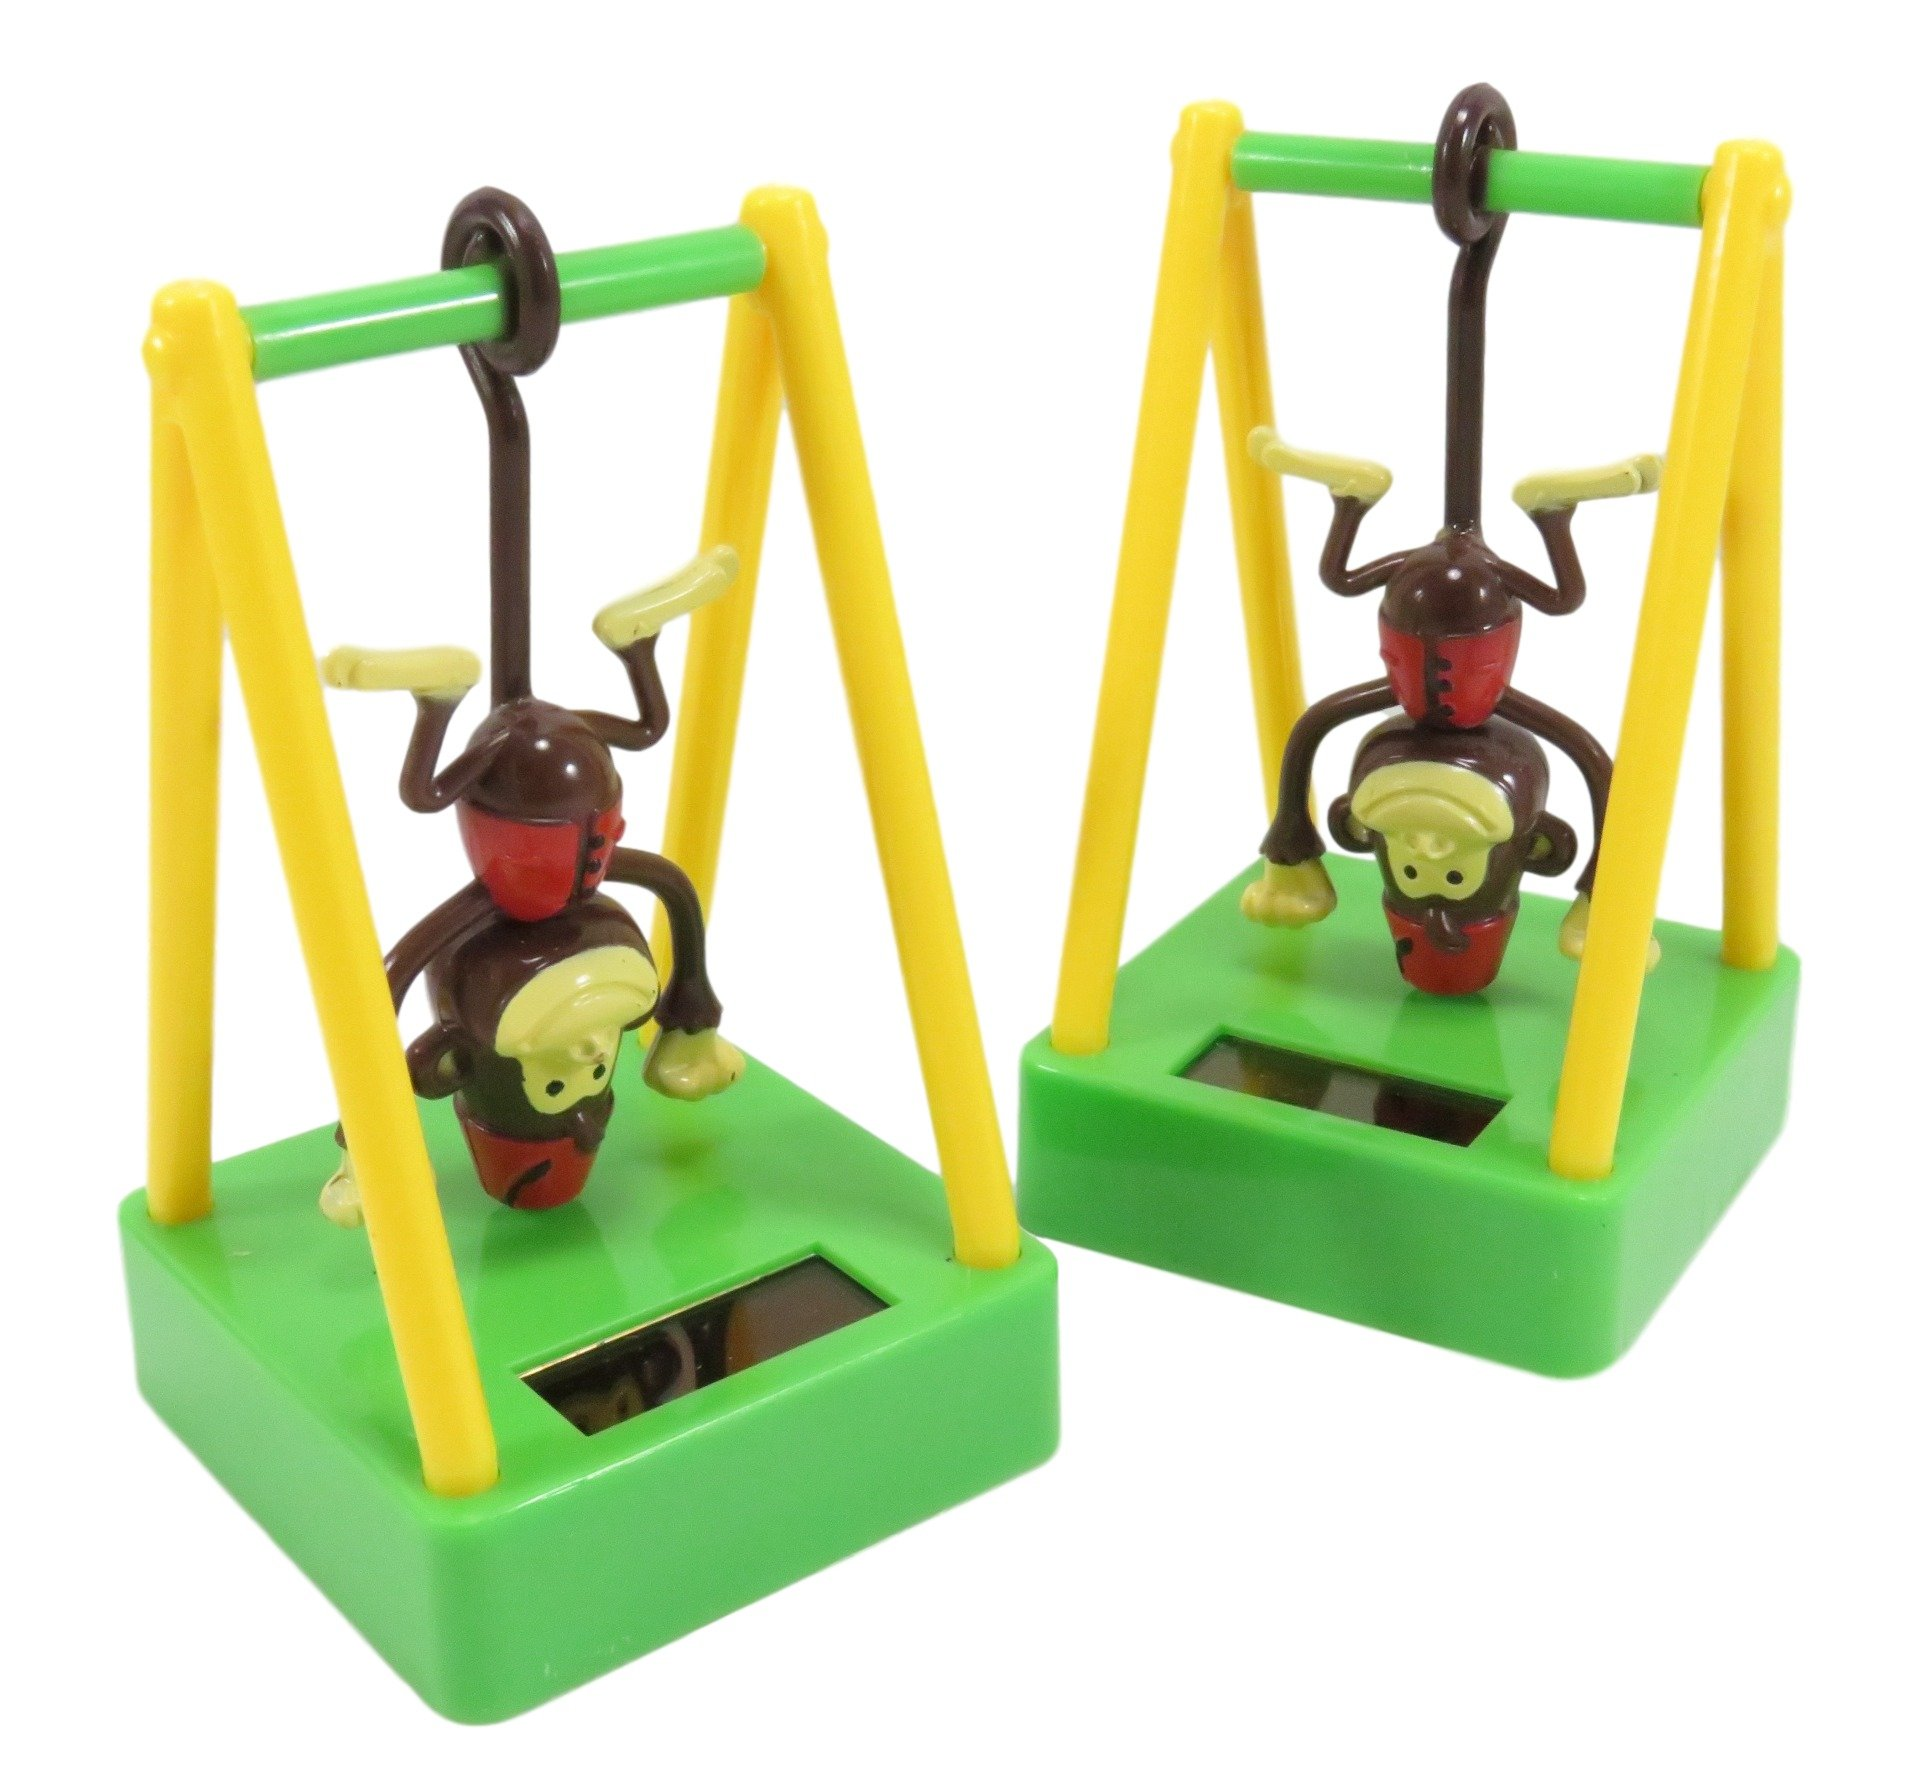 Cute Solar Powered Dancing Monkey Desk and Dashboard Décor 4 x 2.5 Brown Yellow Green (Set of 2)